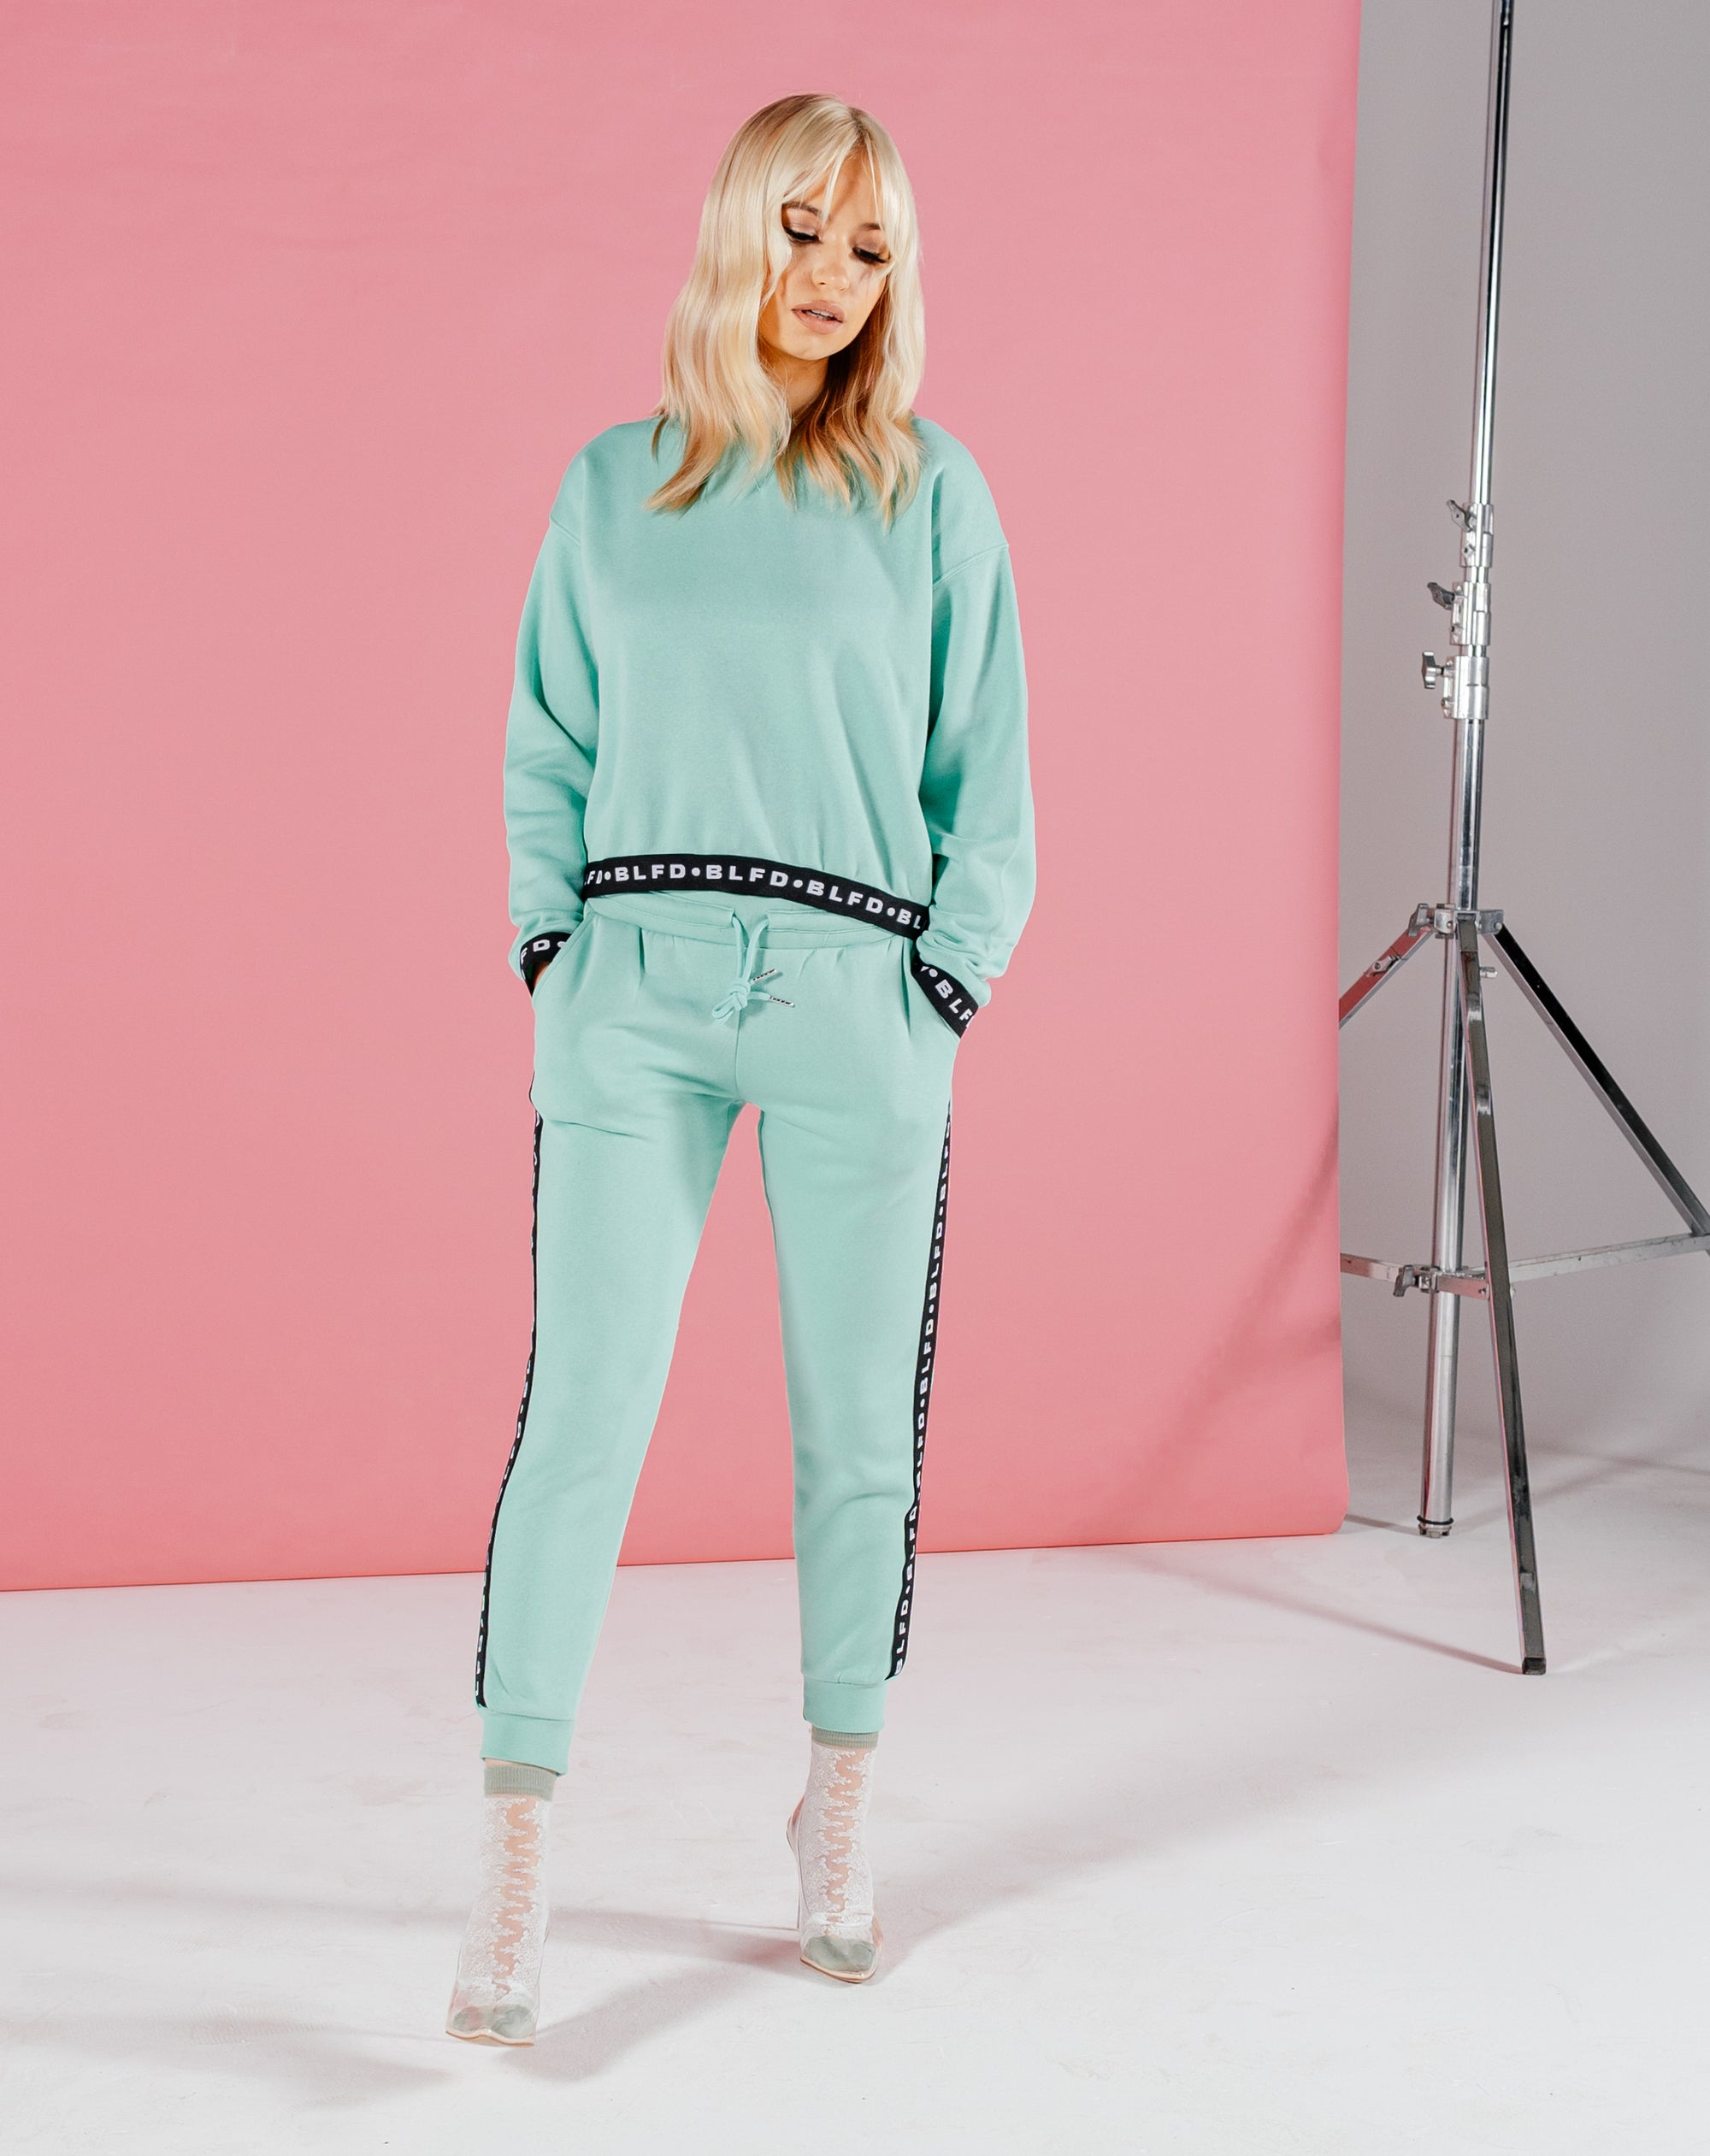 BLFD MERTY WOMEN'S JOGGERS WITH BRANDED TAPE - MINT